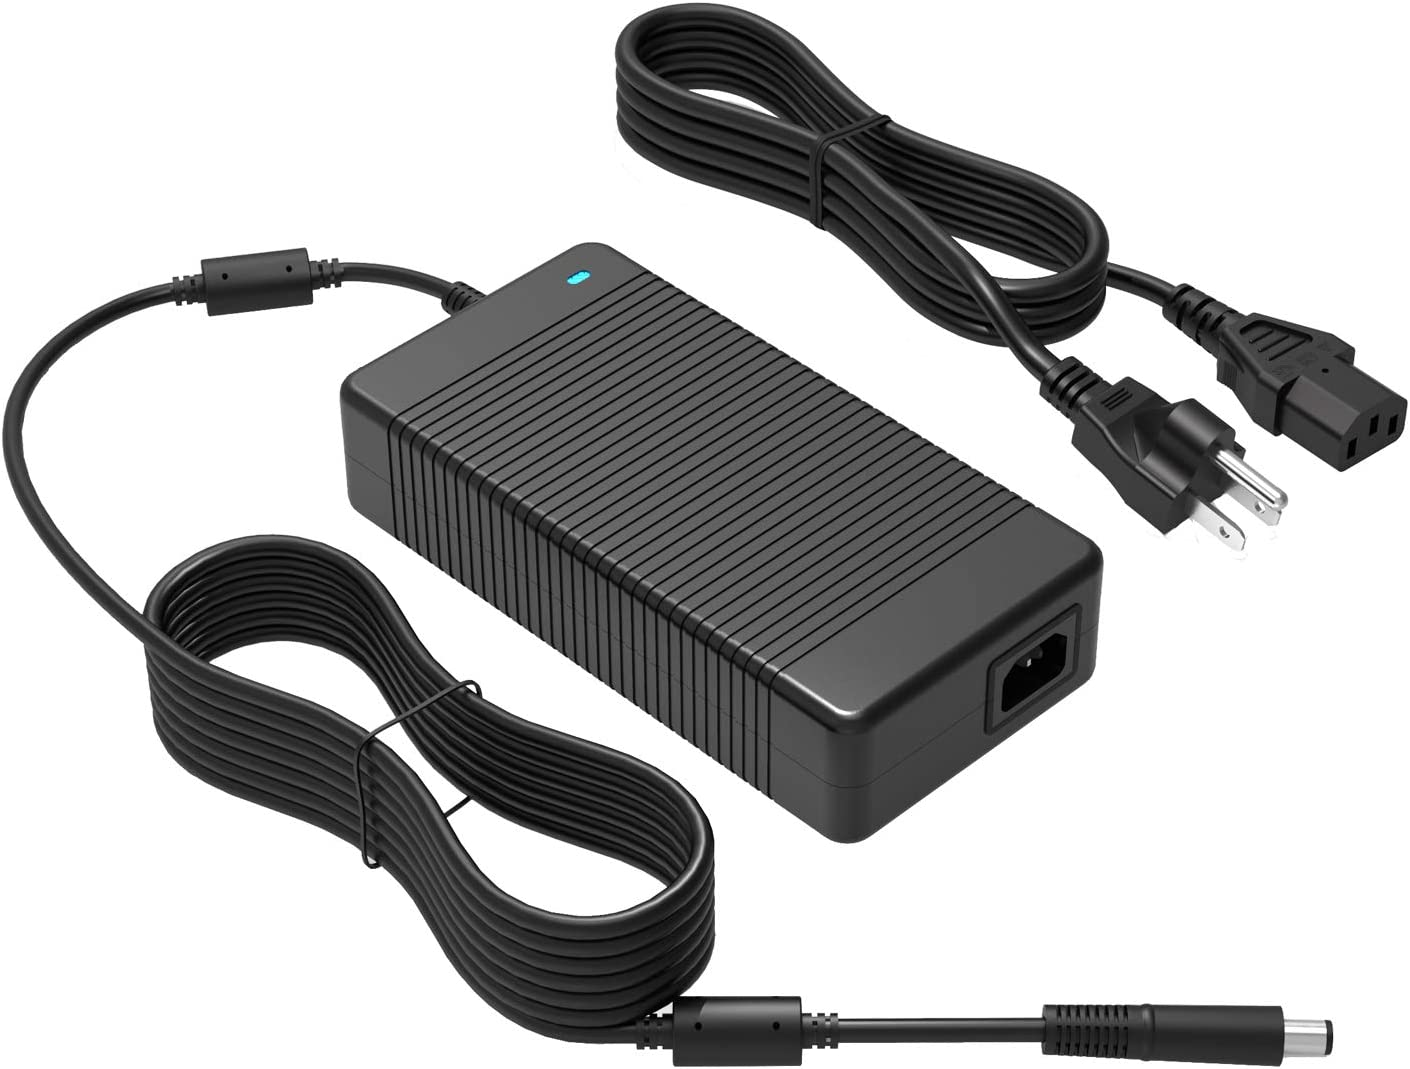 19.5V 16.9A 330W Alienware Power Supply AC Adapter Charger Fit for Dell Alienware X51 X51 R2, M18x M18x R1, R2, R3, DA330PM111 ADP-330AB B XM3C3 331-2429 320-2269 Laptop Replacement Power Cord